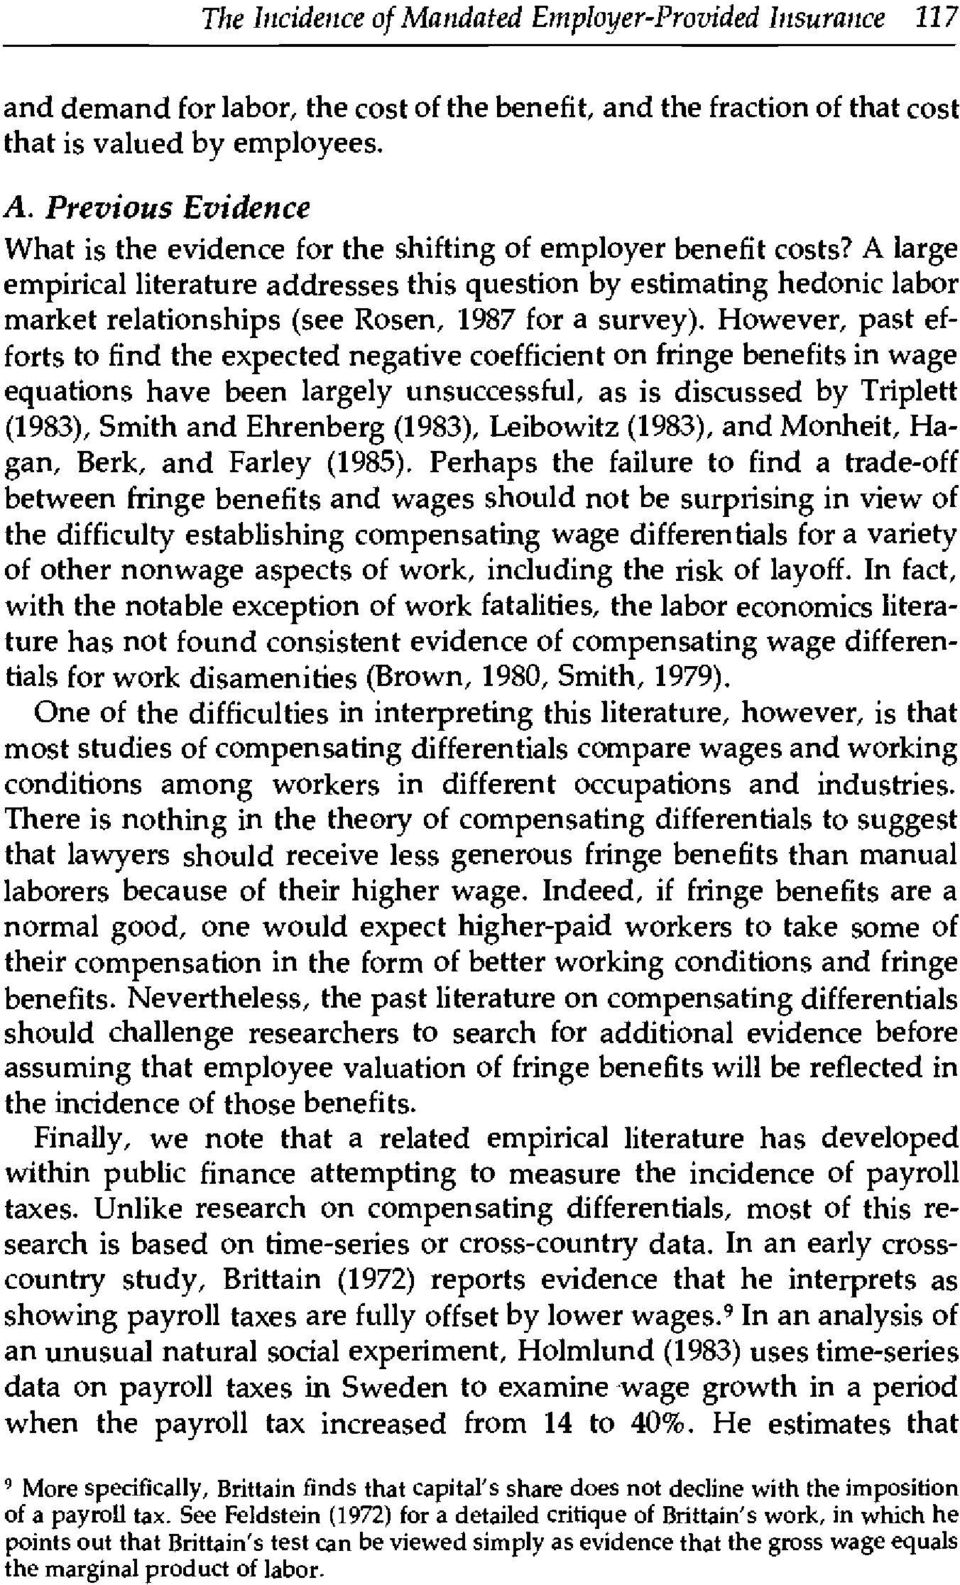 A large empirical literature addresses this question by estimating hedonic labor market relationships (see Rosen, 1987 for a survey).